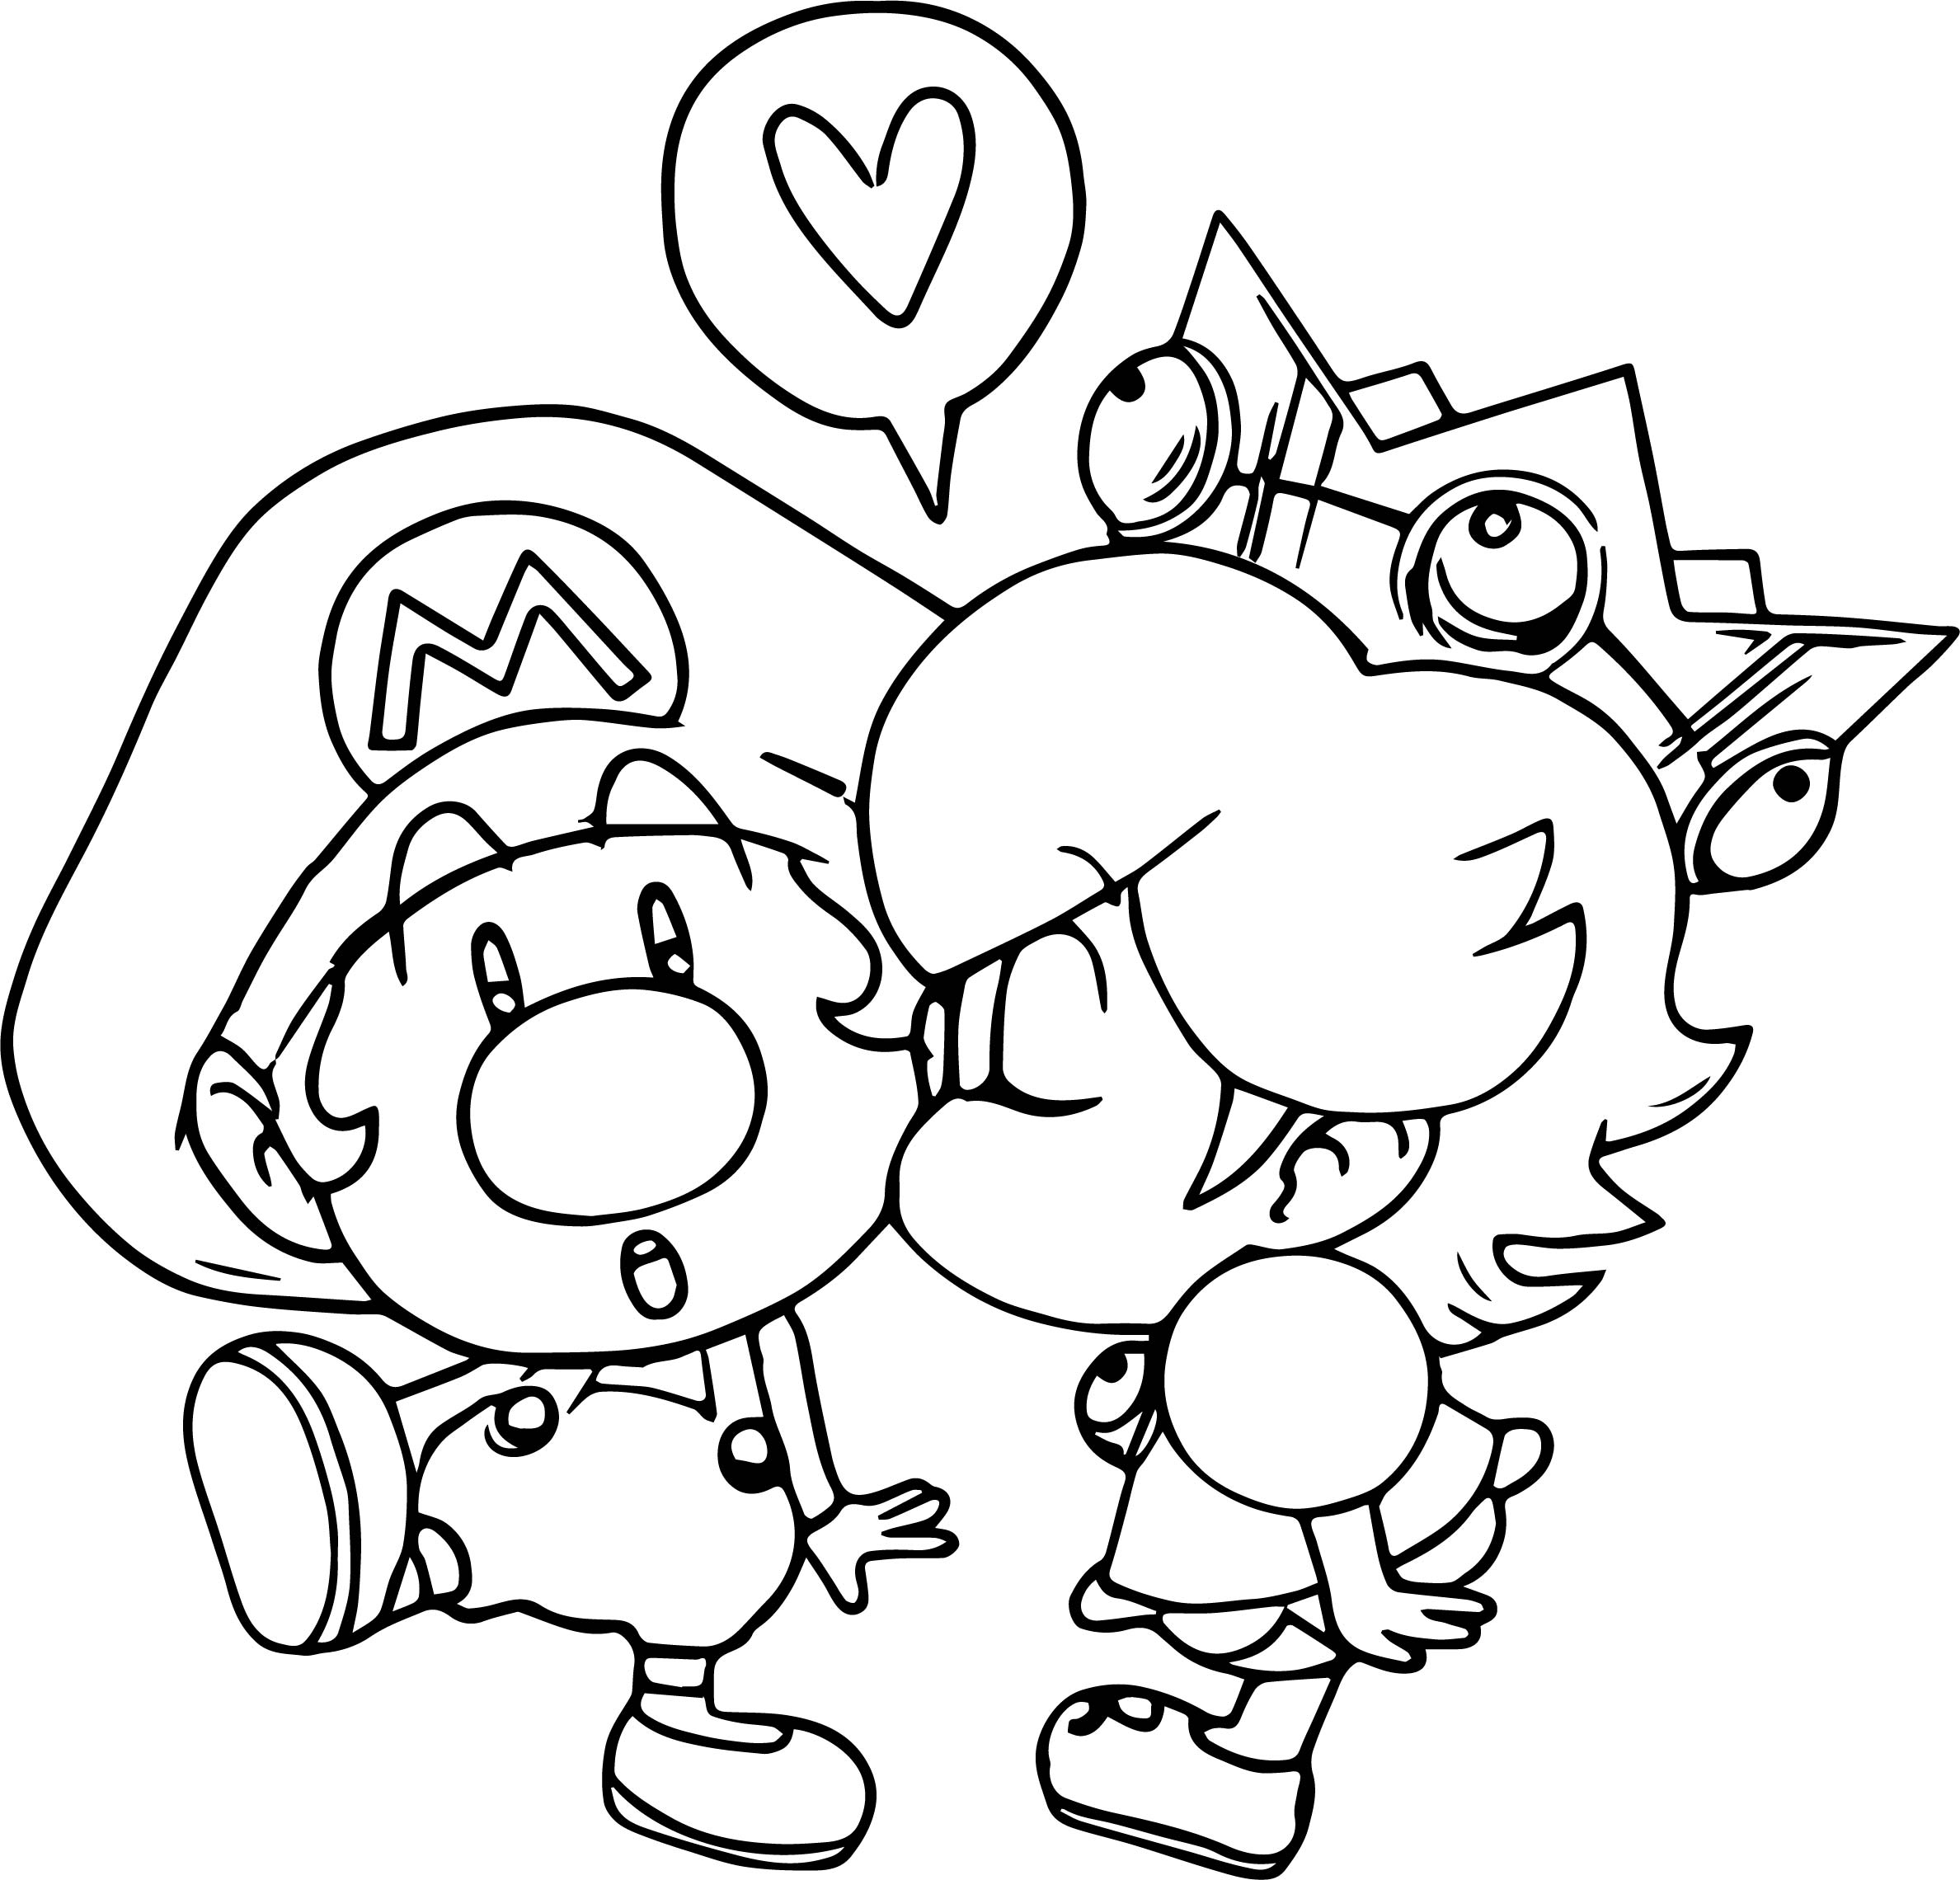 Mario And Daisy Coloring Page